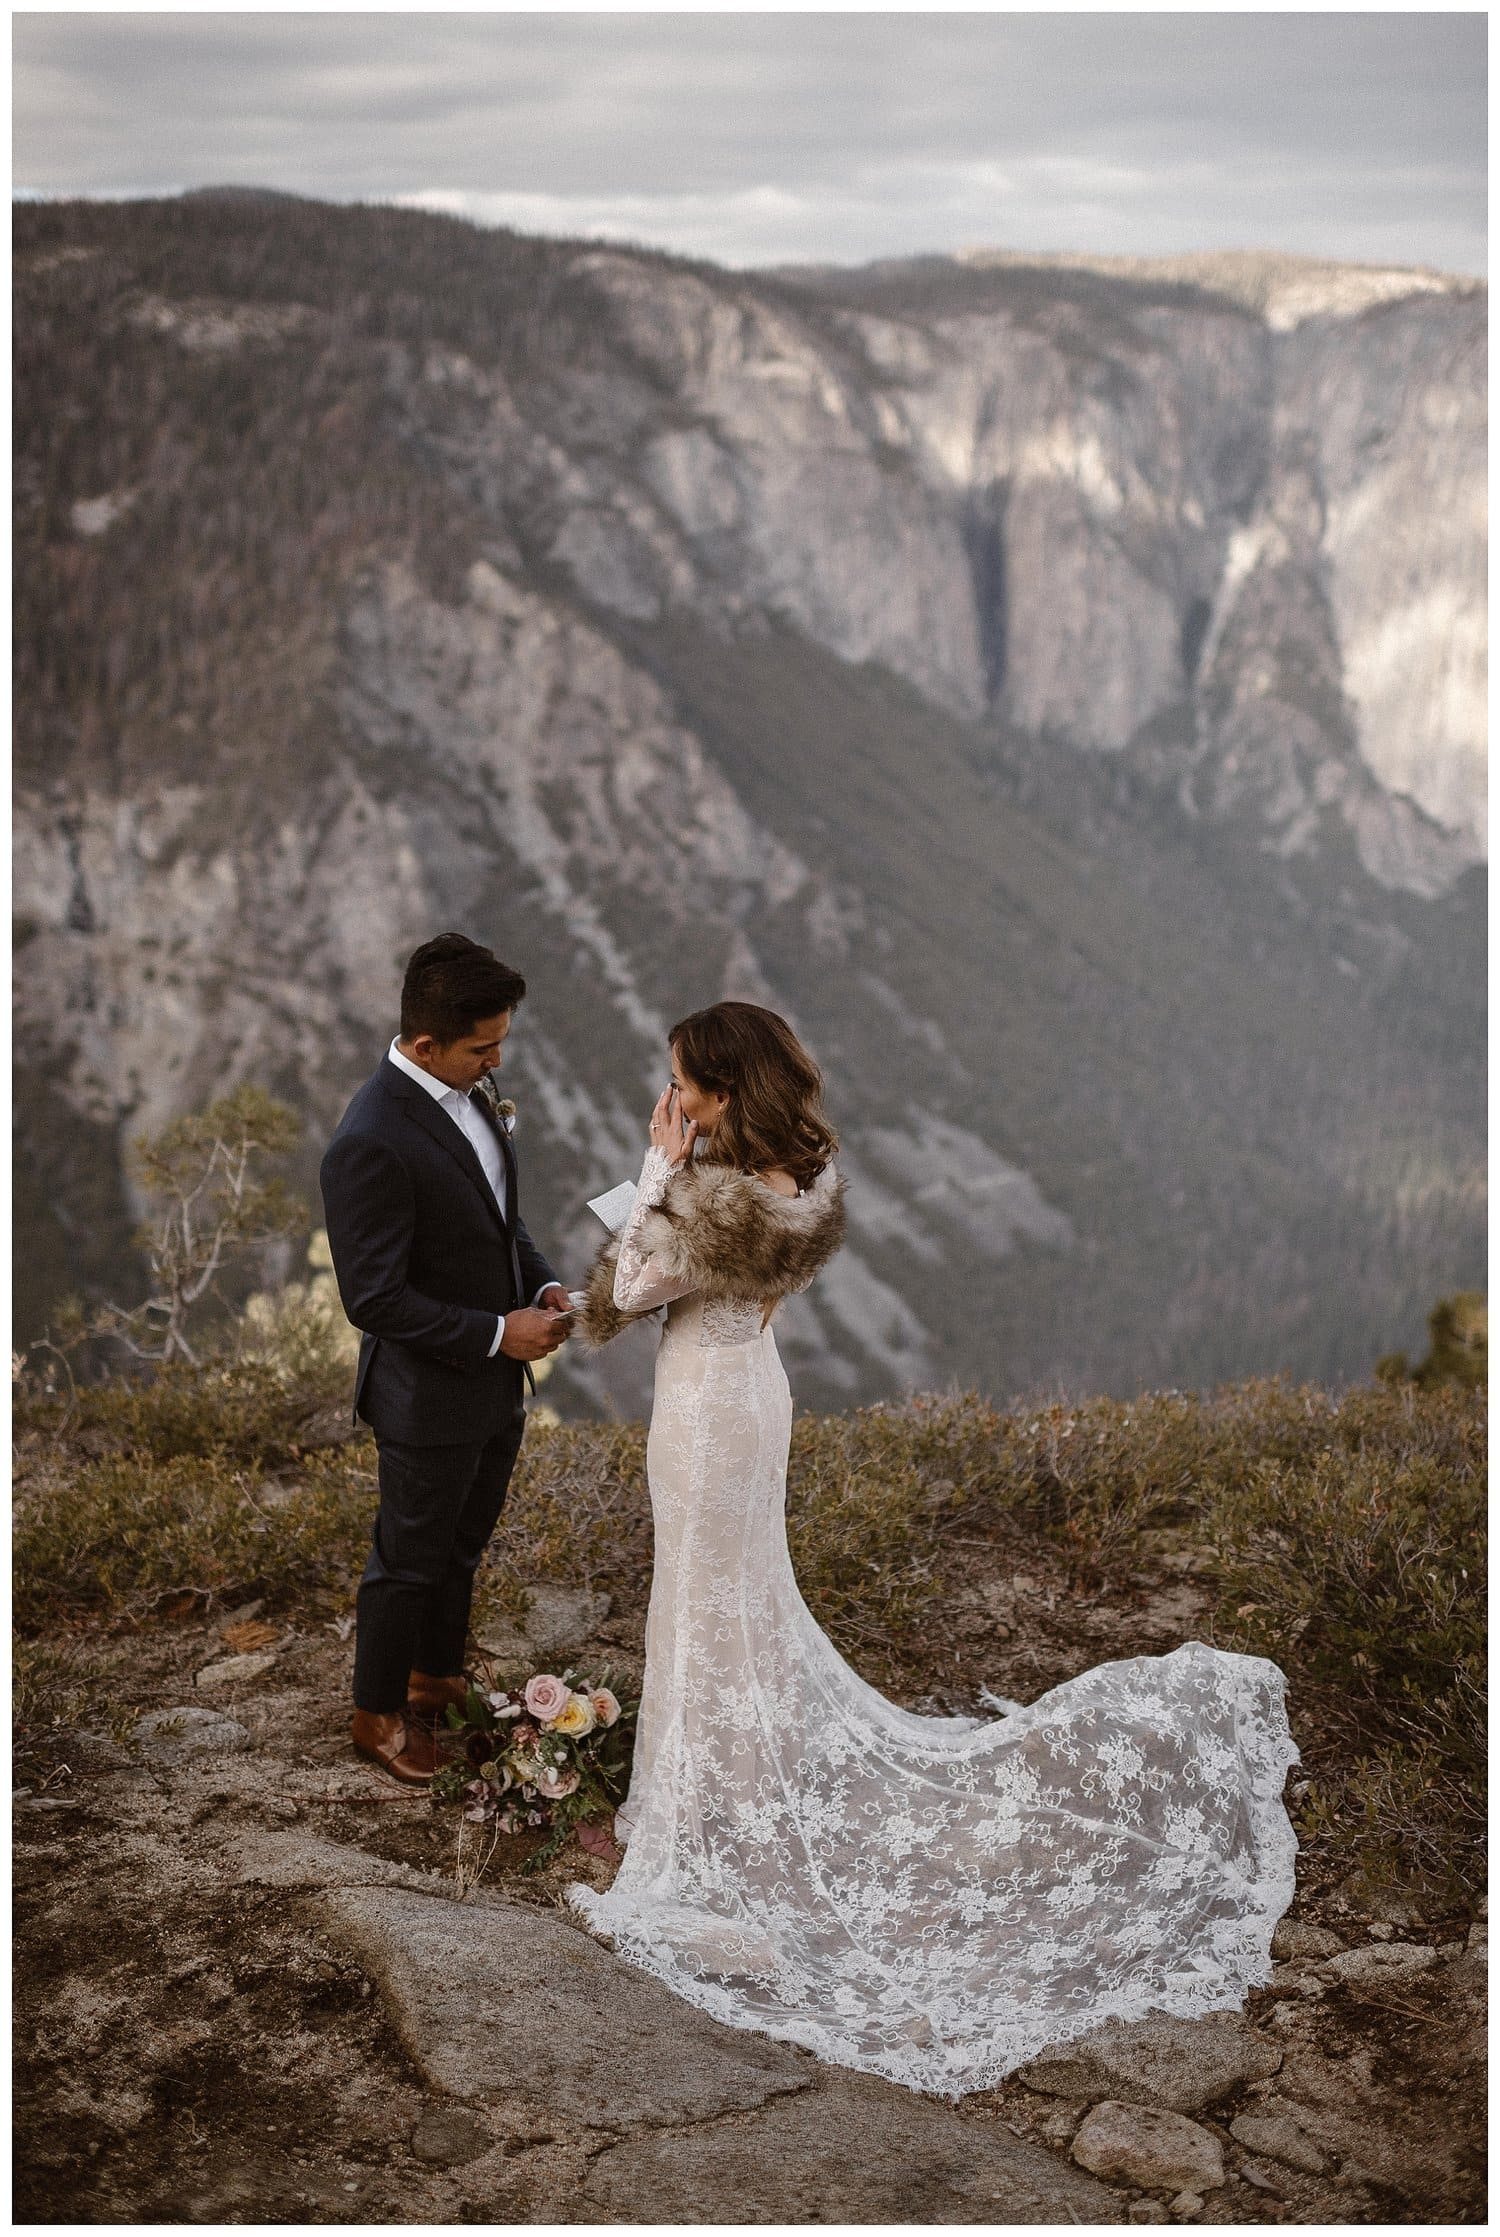 Bride wipes tear off her face while reading vows to the groom in Yosemite National Park on their wedding day.